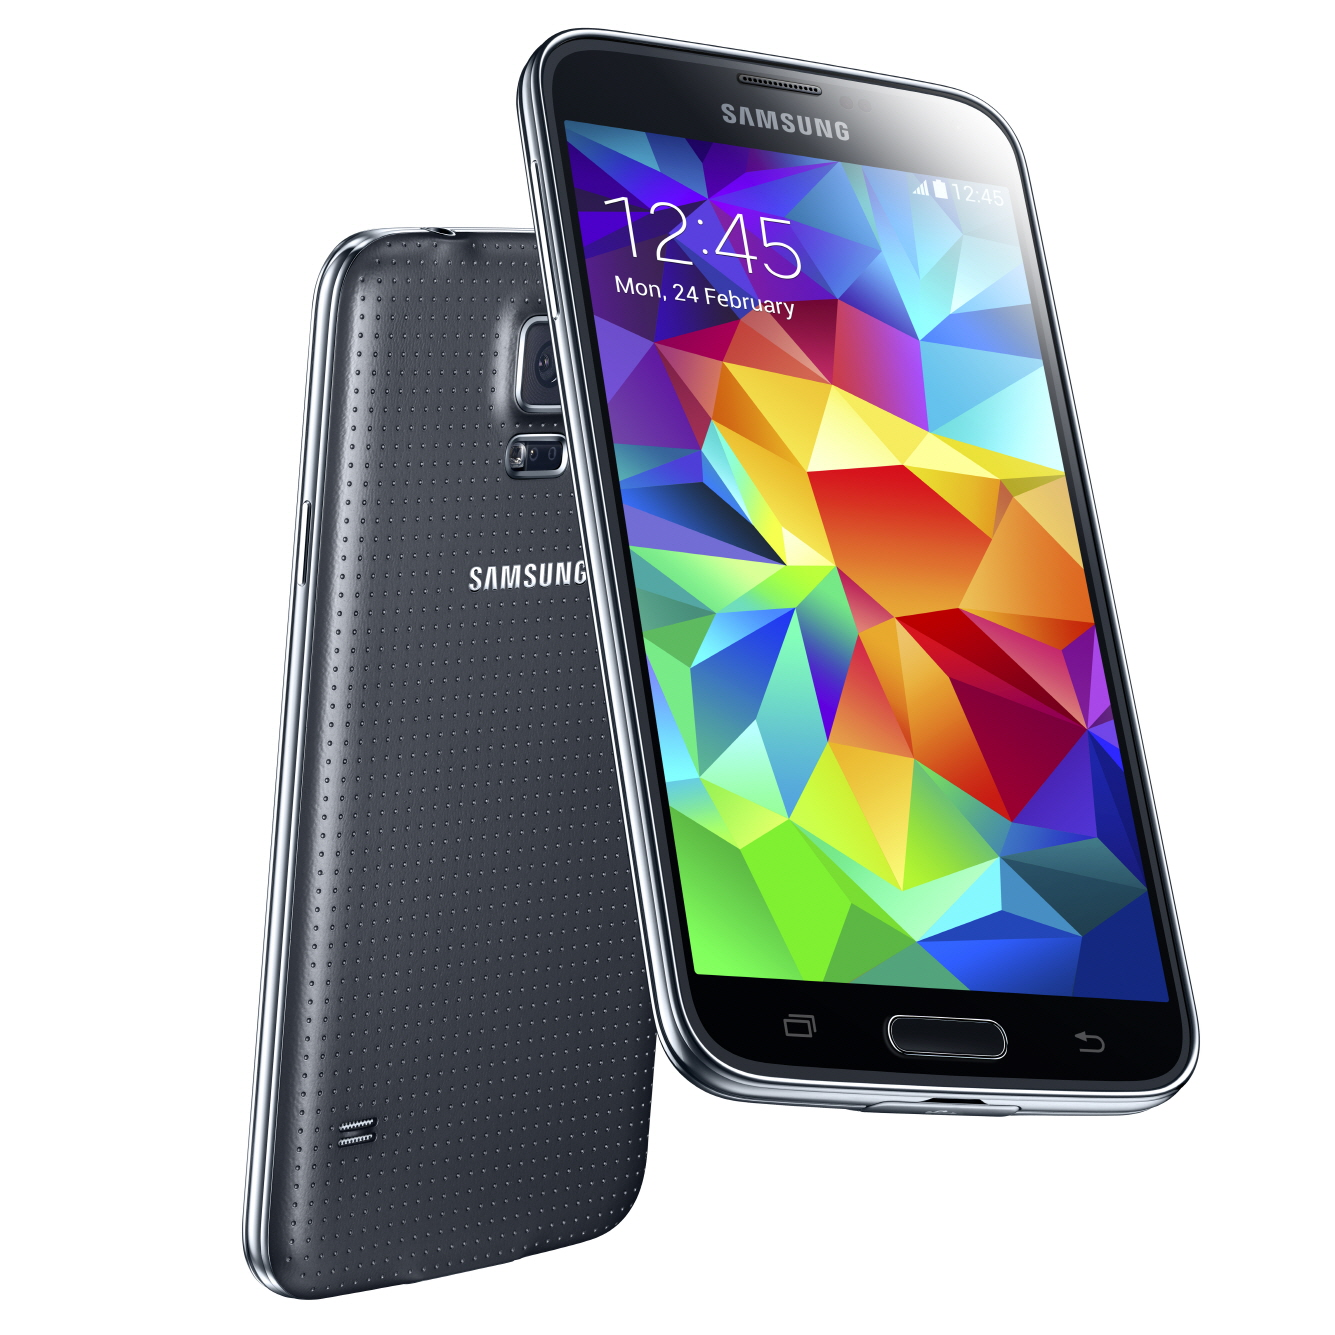 Samsung unveils Galaxy S5 with built-in heart rate monitor